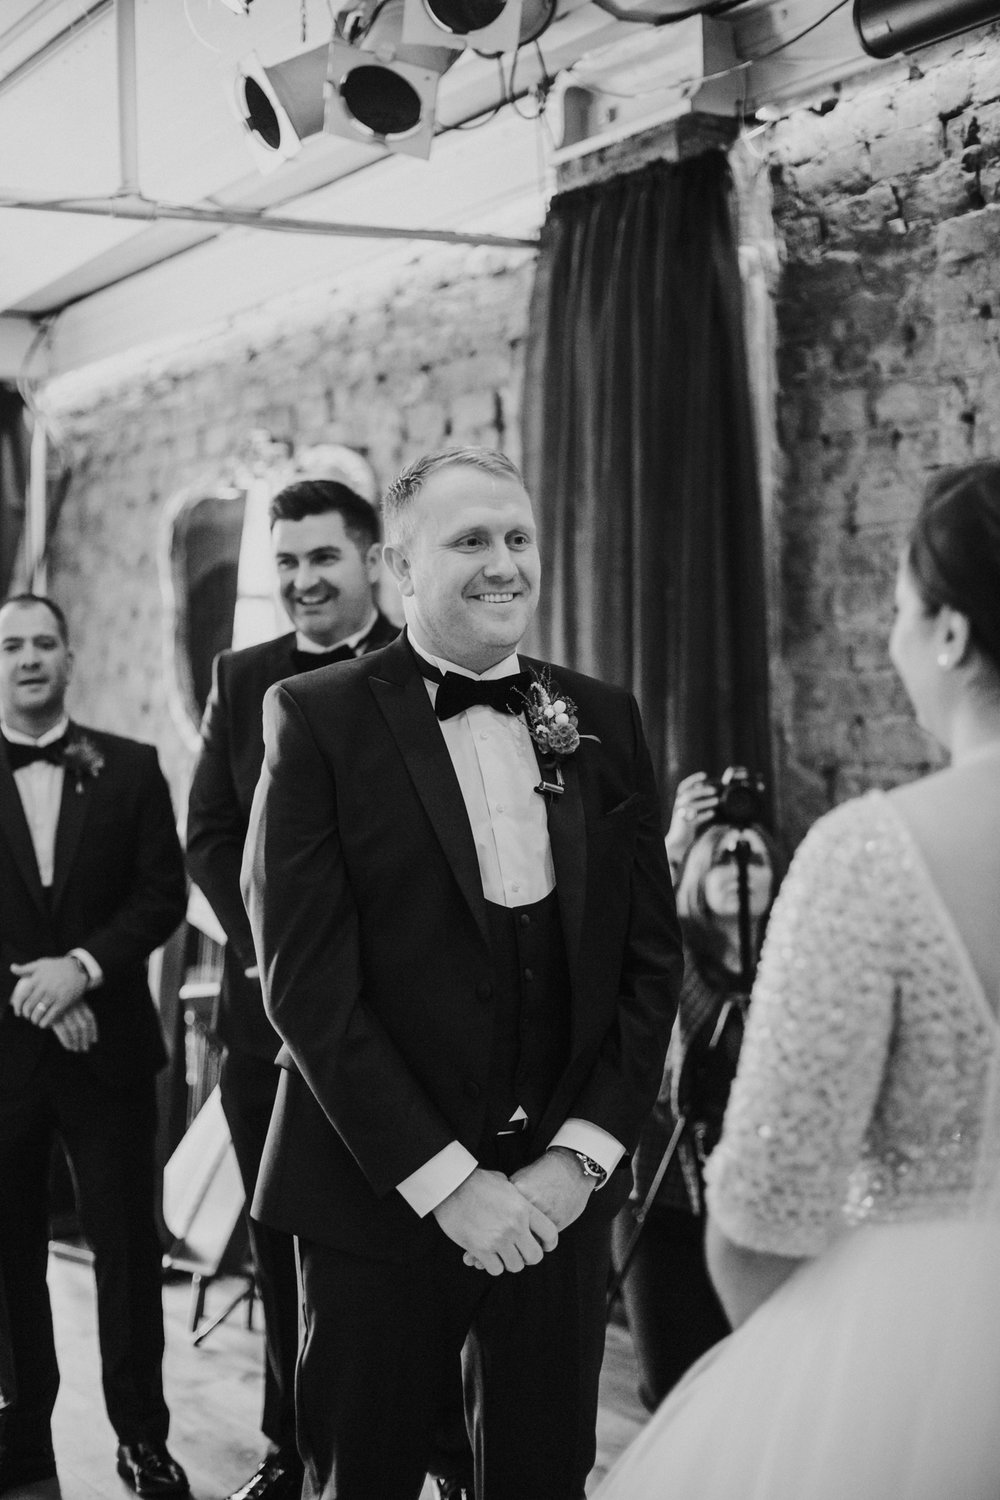 The groom so happy to see the bride for the first time